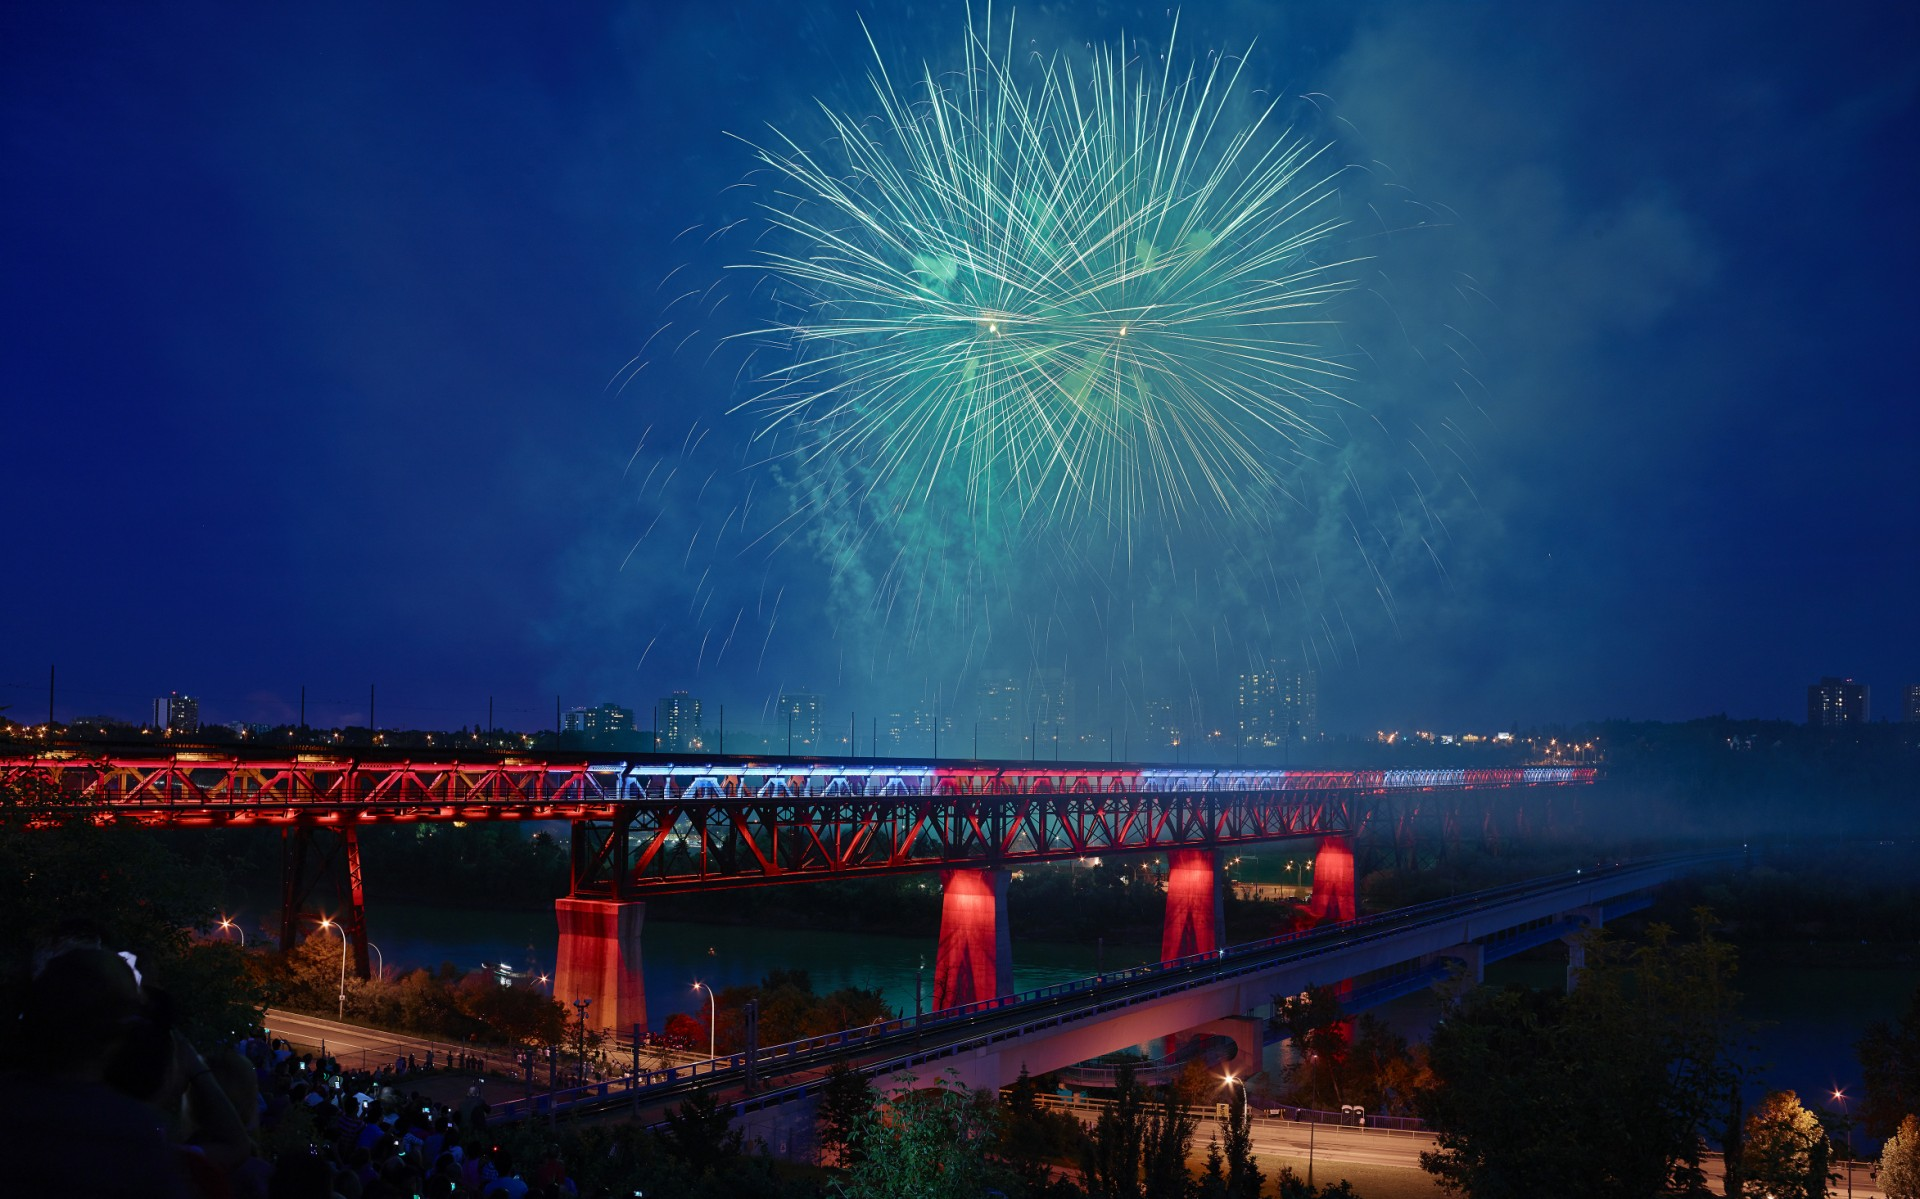 For the first time in its 102-year history, Edmonton's High Level Bridge has been illuminated.